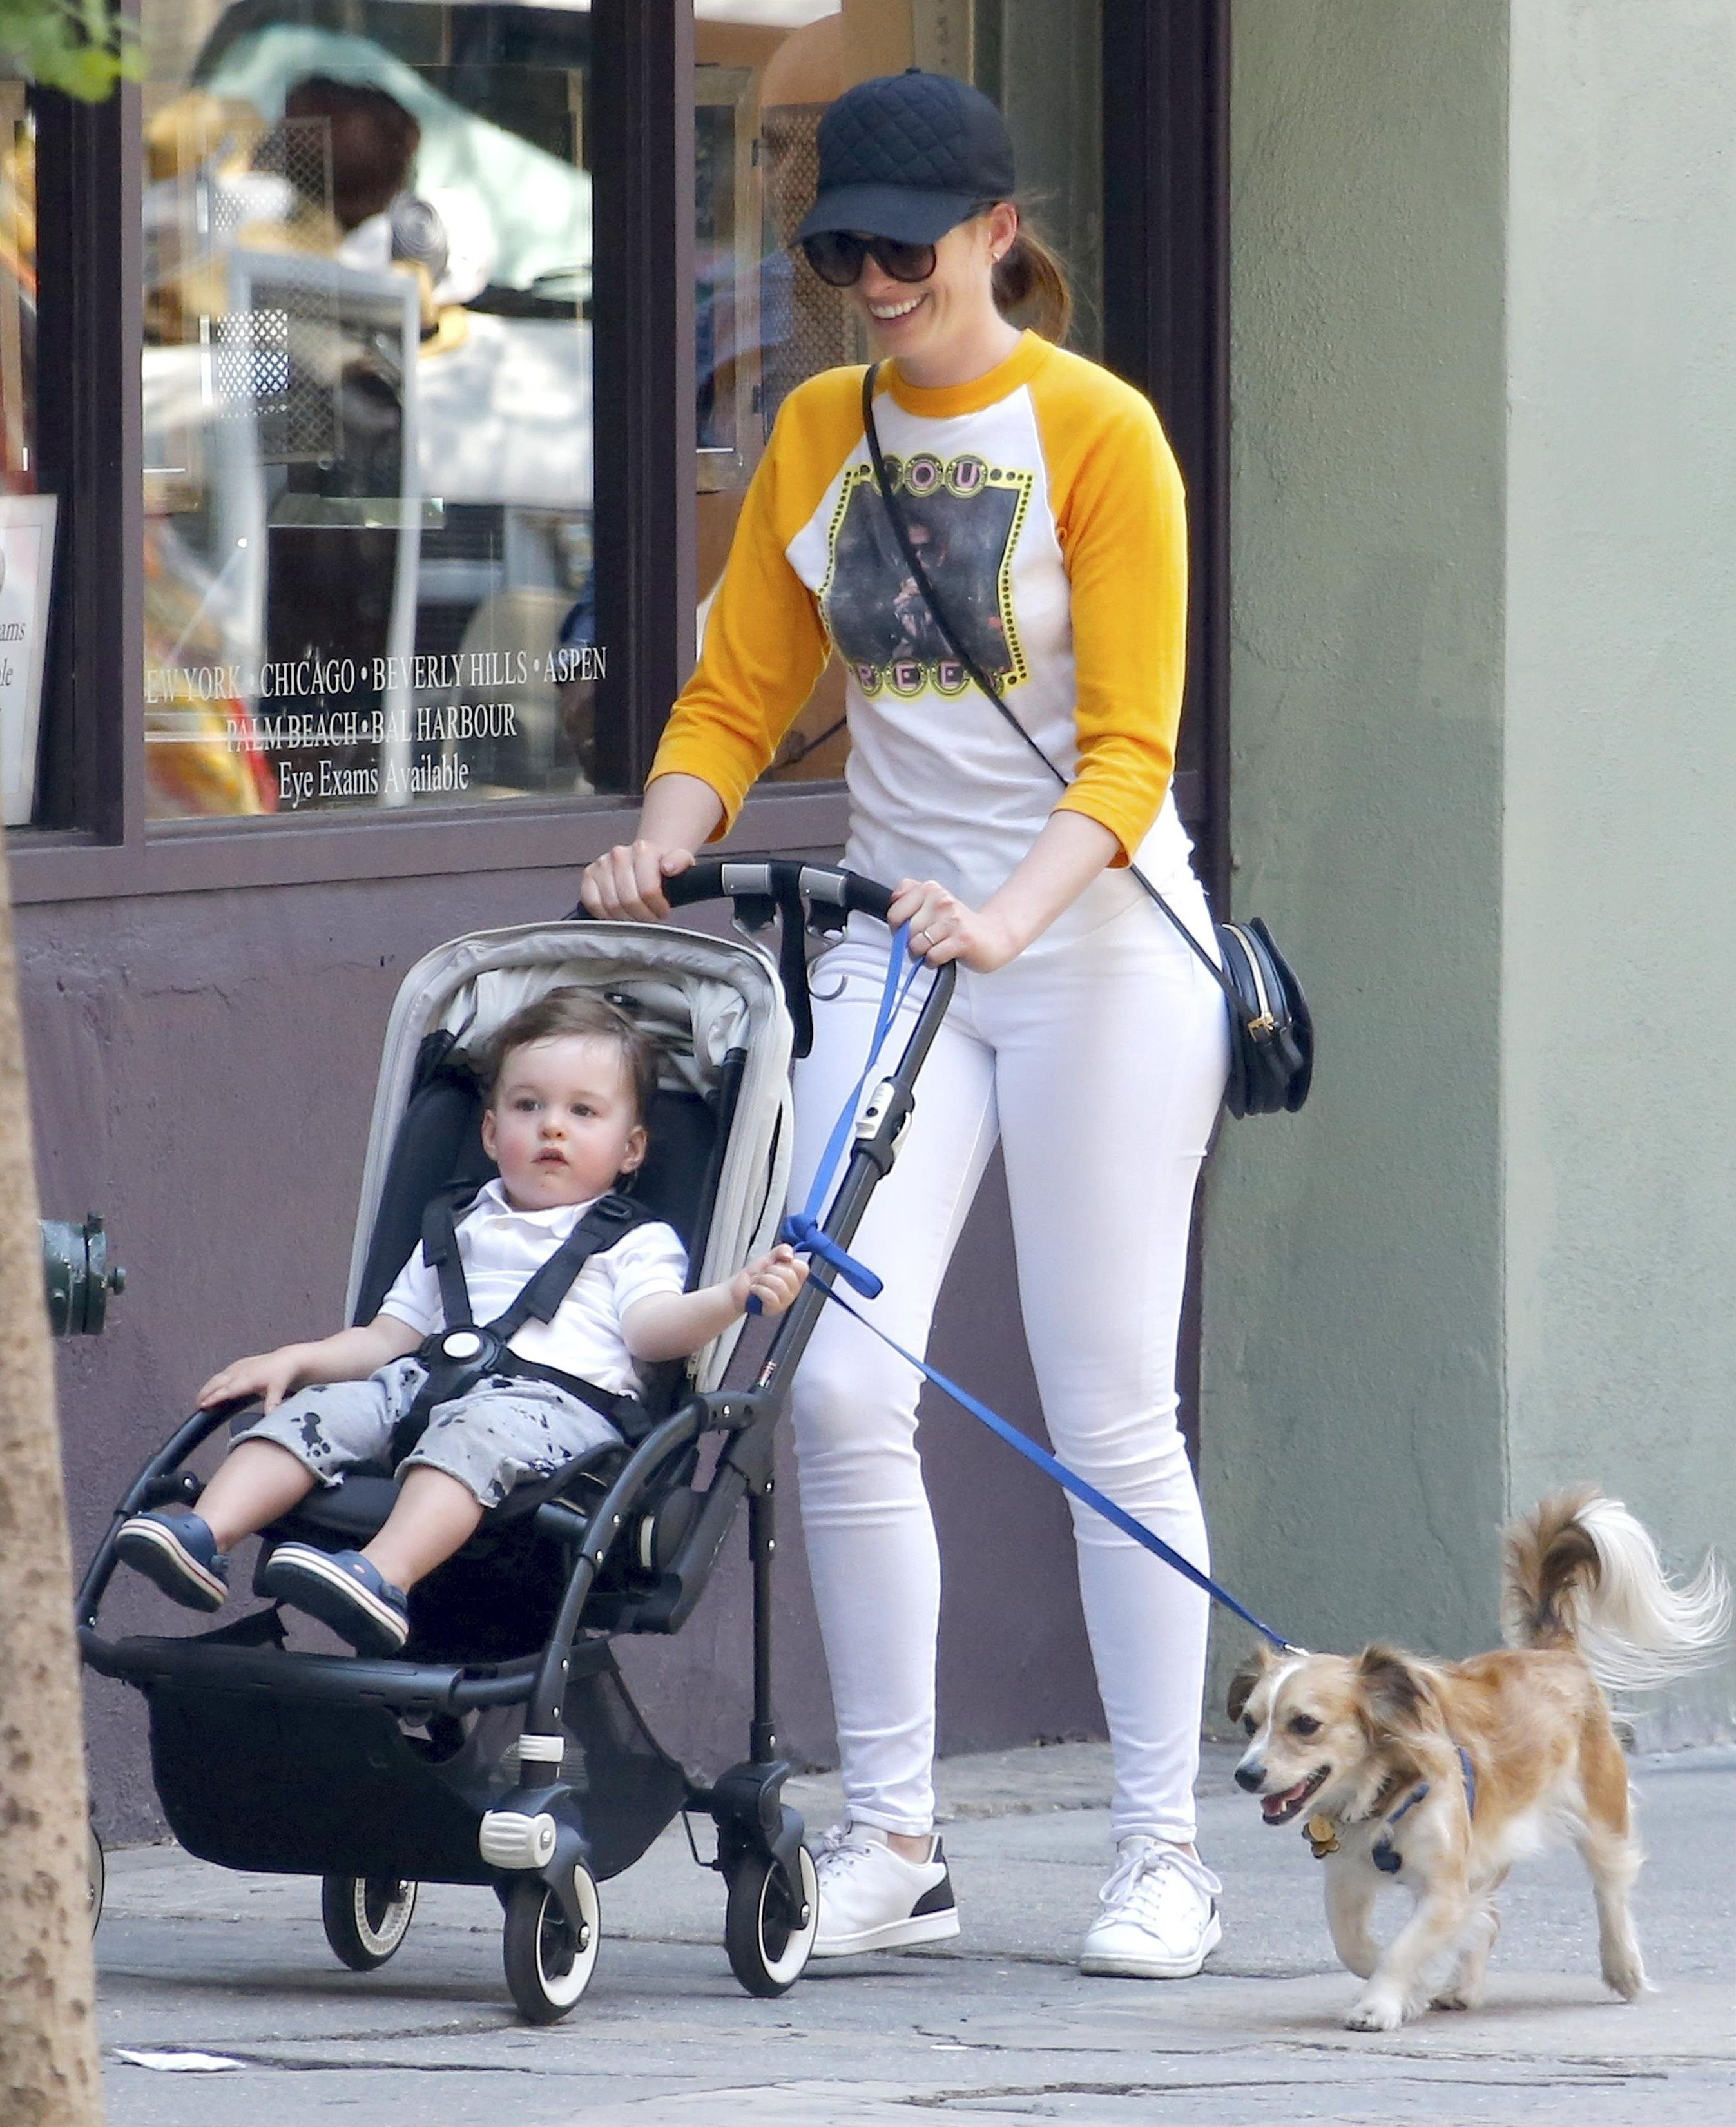 Academy Award winning actress Anne Hathaway was all smiles as she strolled with son Jonathan and the family dog while out in New York City's Soho neighborhood on June 27, 2017.